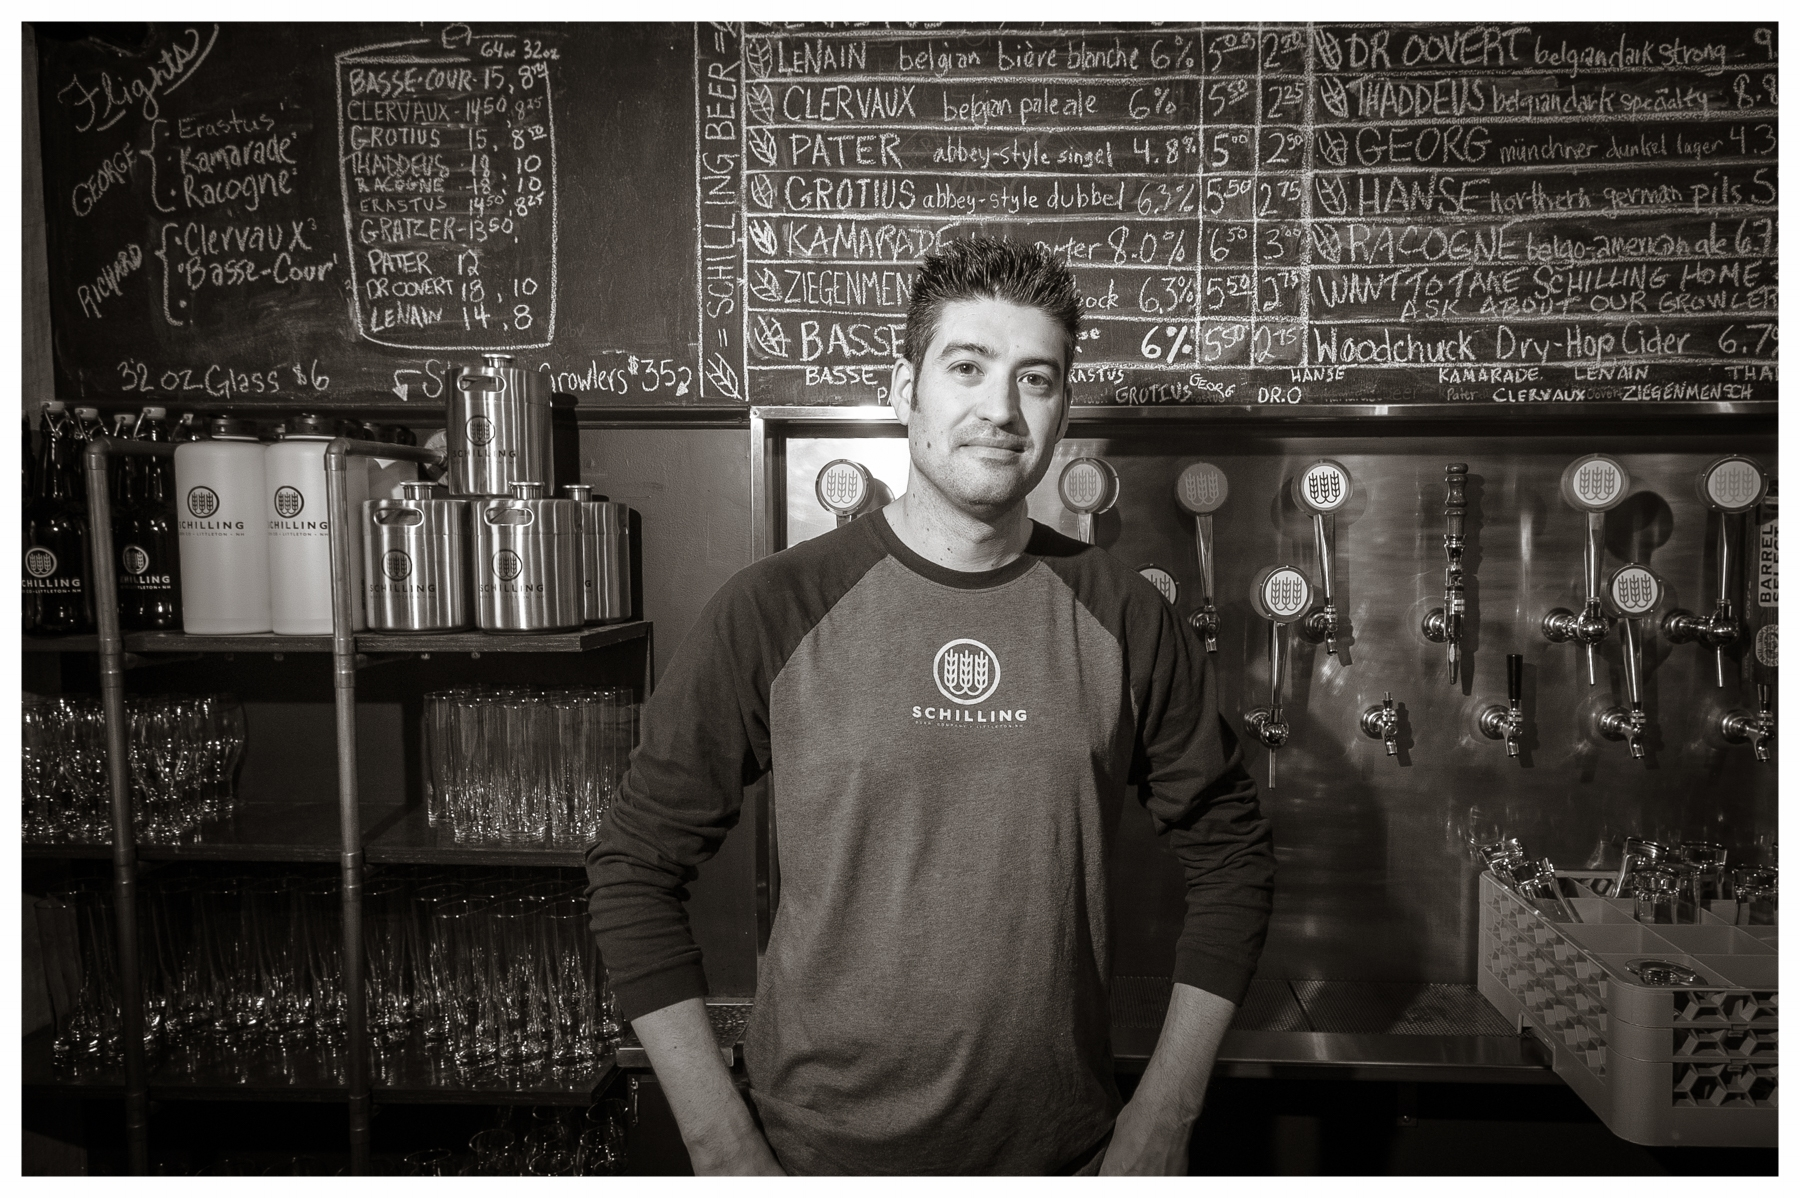 Bartender Jeremy Hand, Schilling Beer Co. Littleton, NH 2014